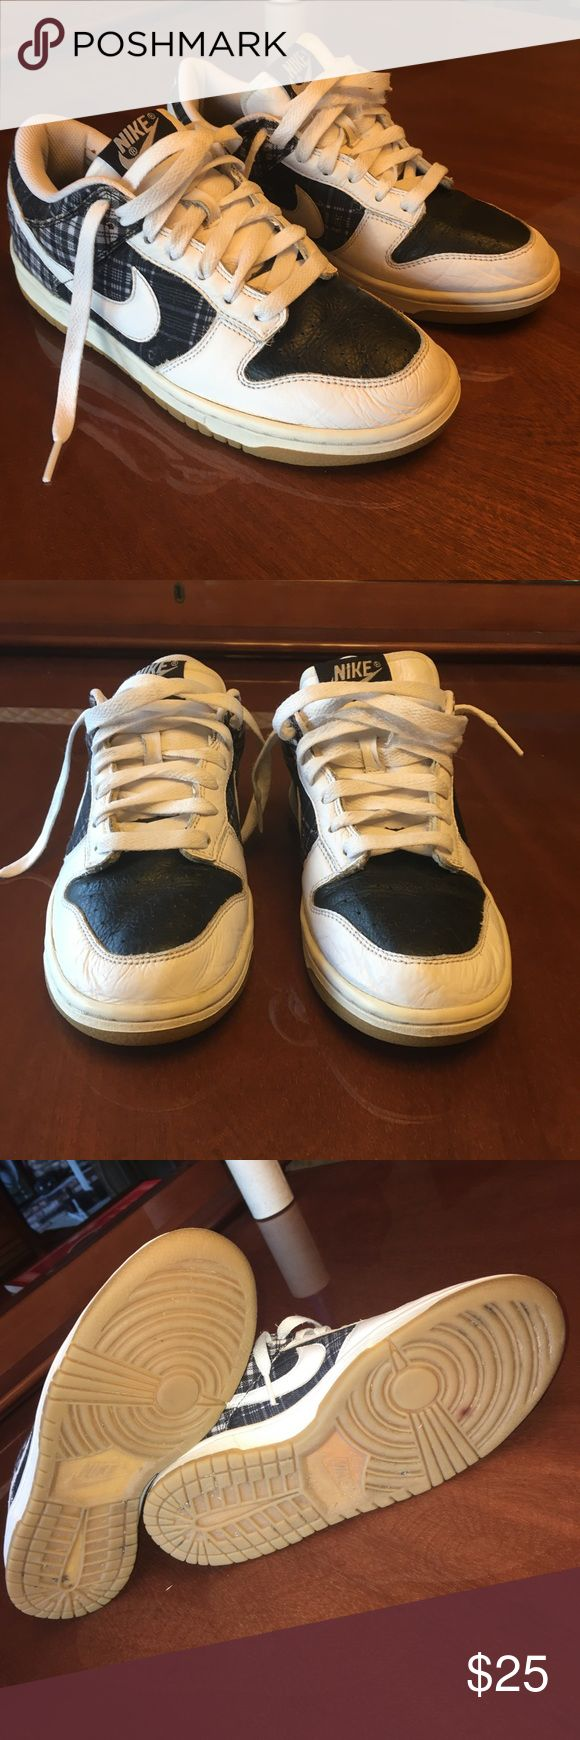 Nike low dunks plaid tennis Active Skate shoes Great condition; hard to find low rise dunks! Nike Shoes Sneakers